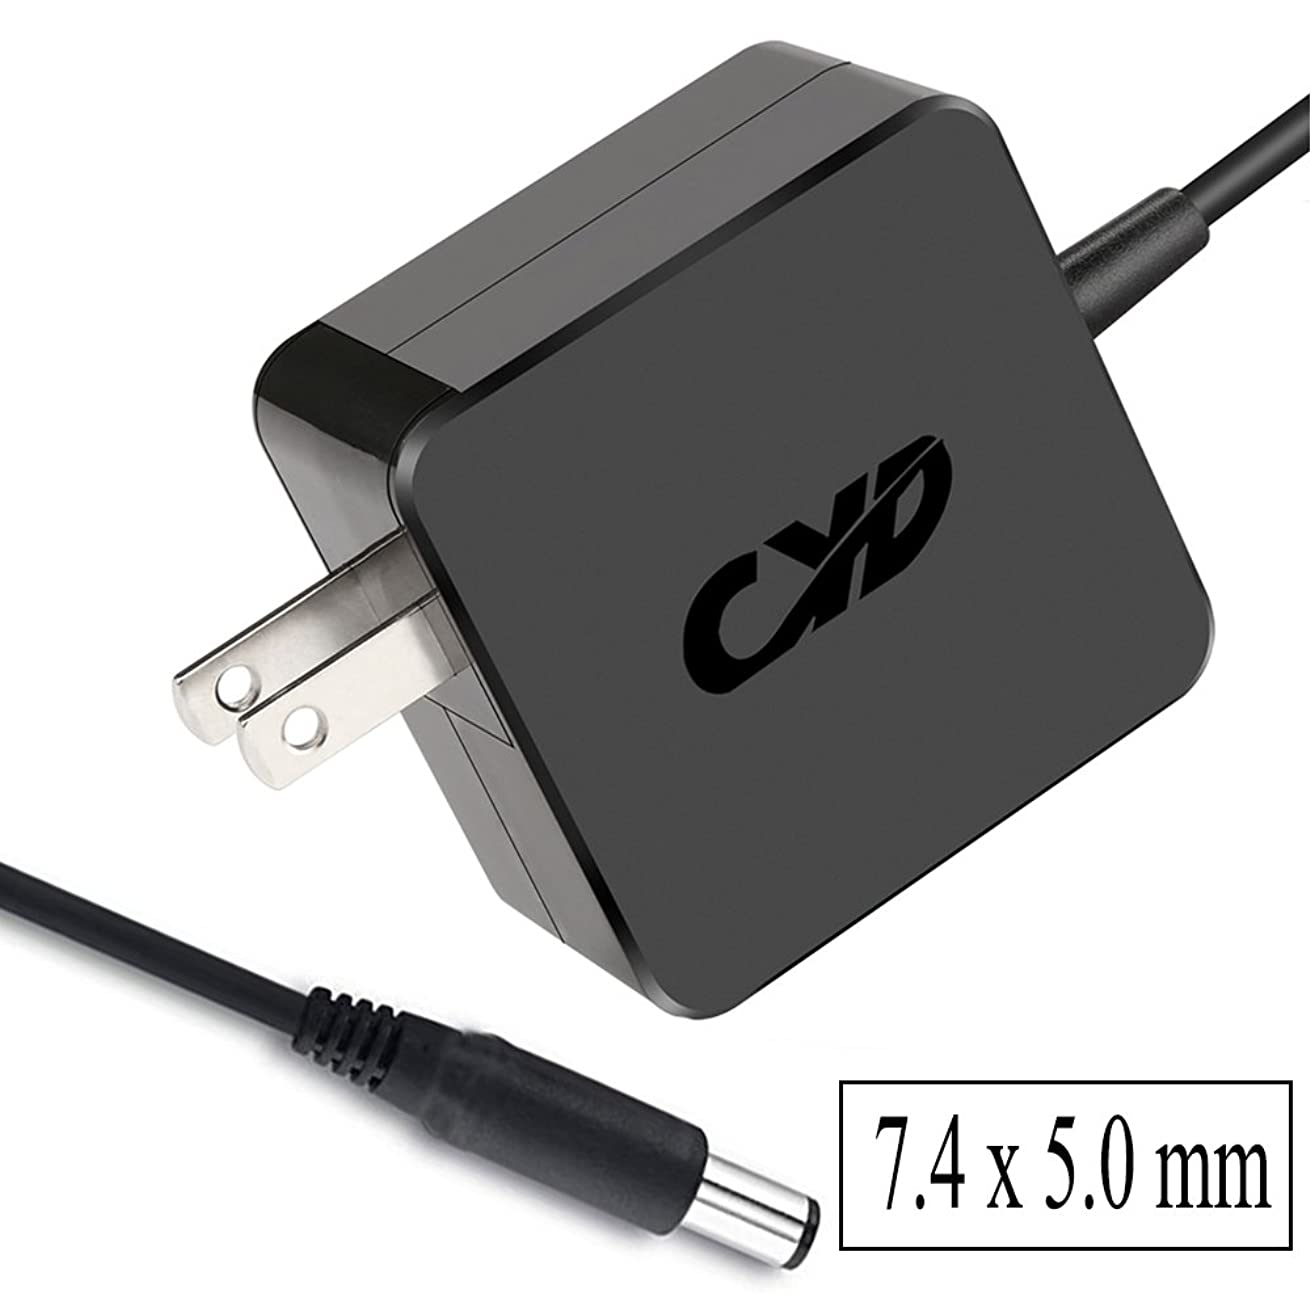 CYD 45w powerfast-Replacement for Laptop Charger hp Pavilion g4 g6 g7 m6 dm4 dv4 dv5 dv6 dv7 g60 g61 g72 elitebook 2540p 2560p 2570p 2730p 2740p 2760p 6930p 8440p